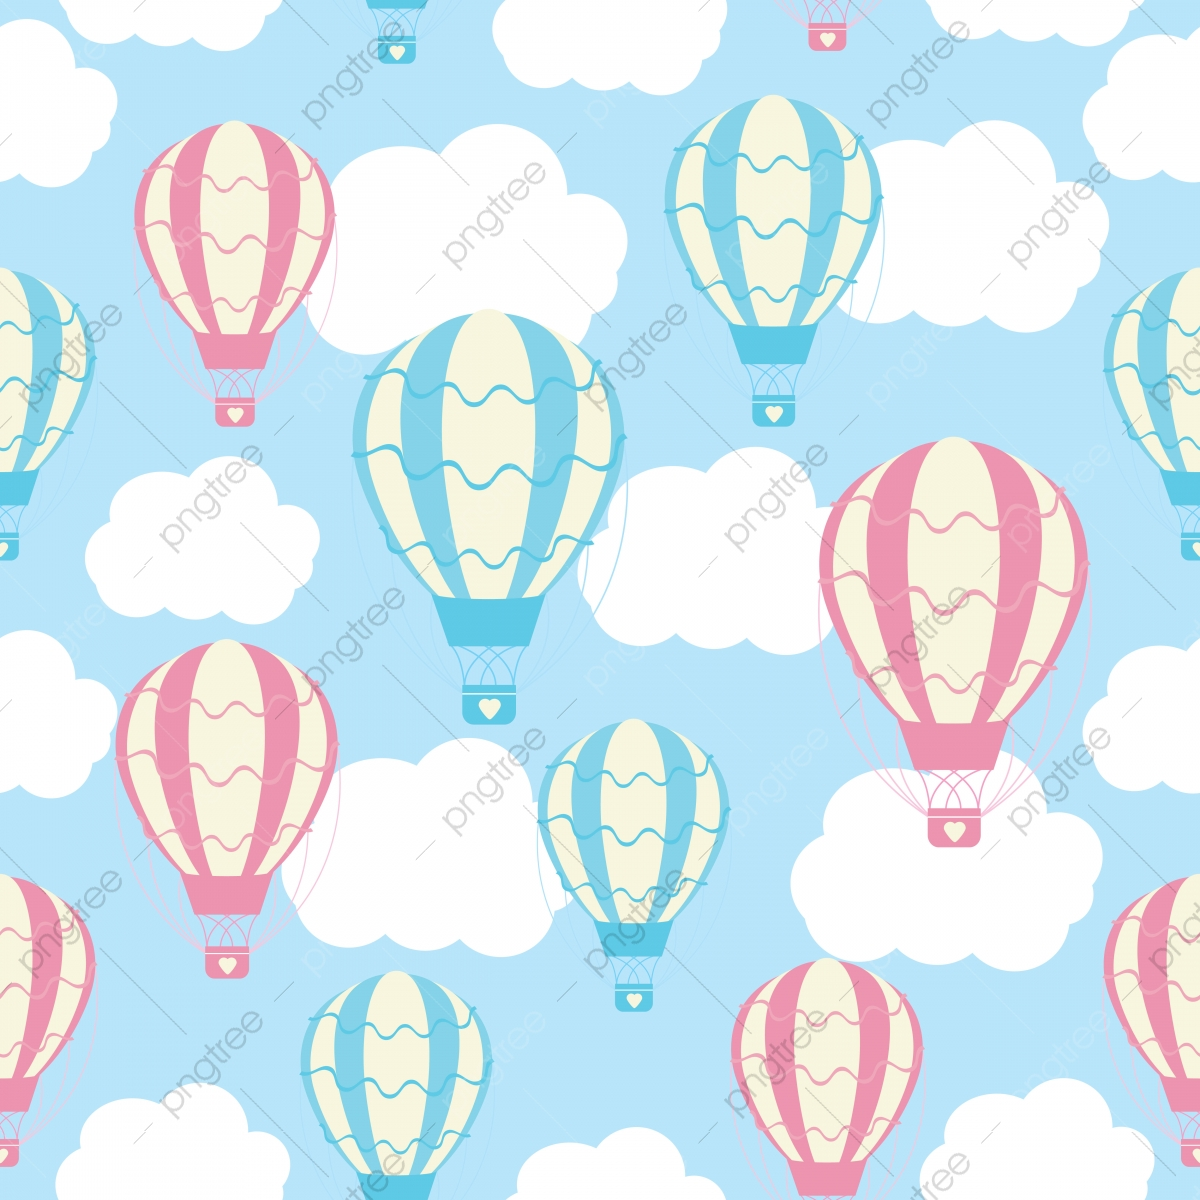 Shower Seamless Pattern With Cute Hot Air Balloons On Blue